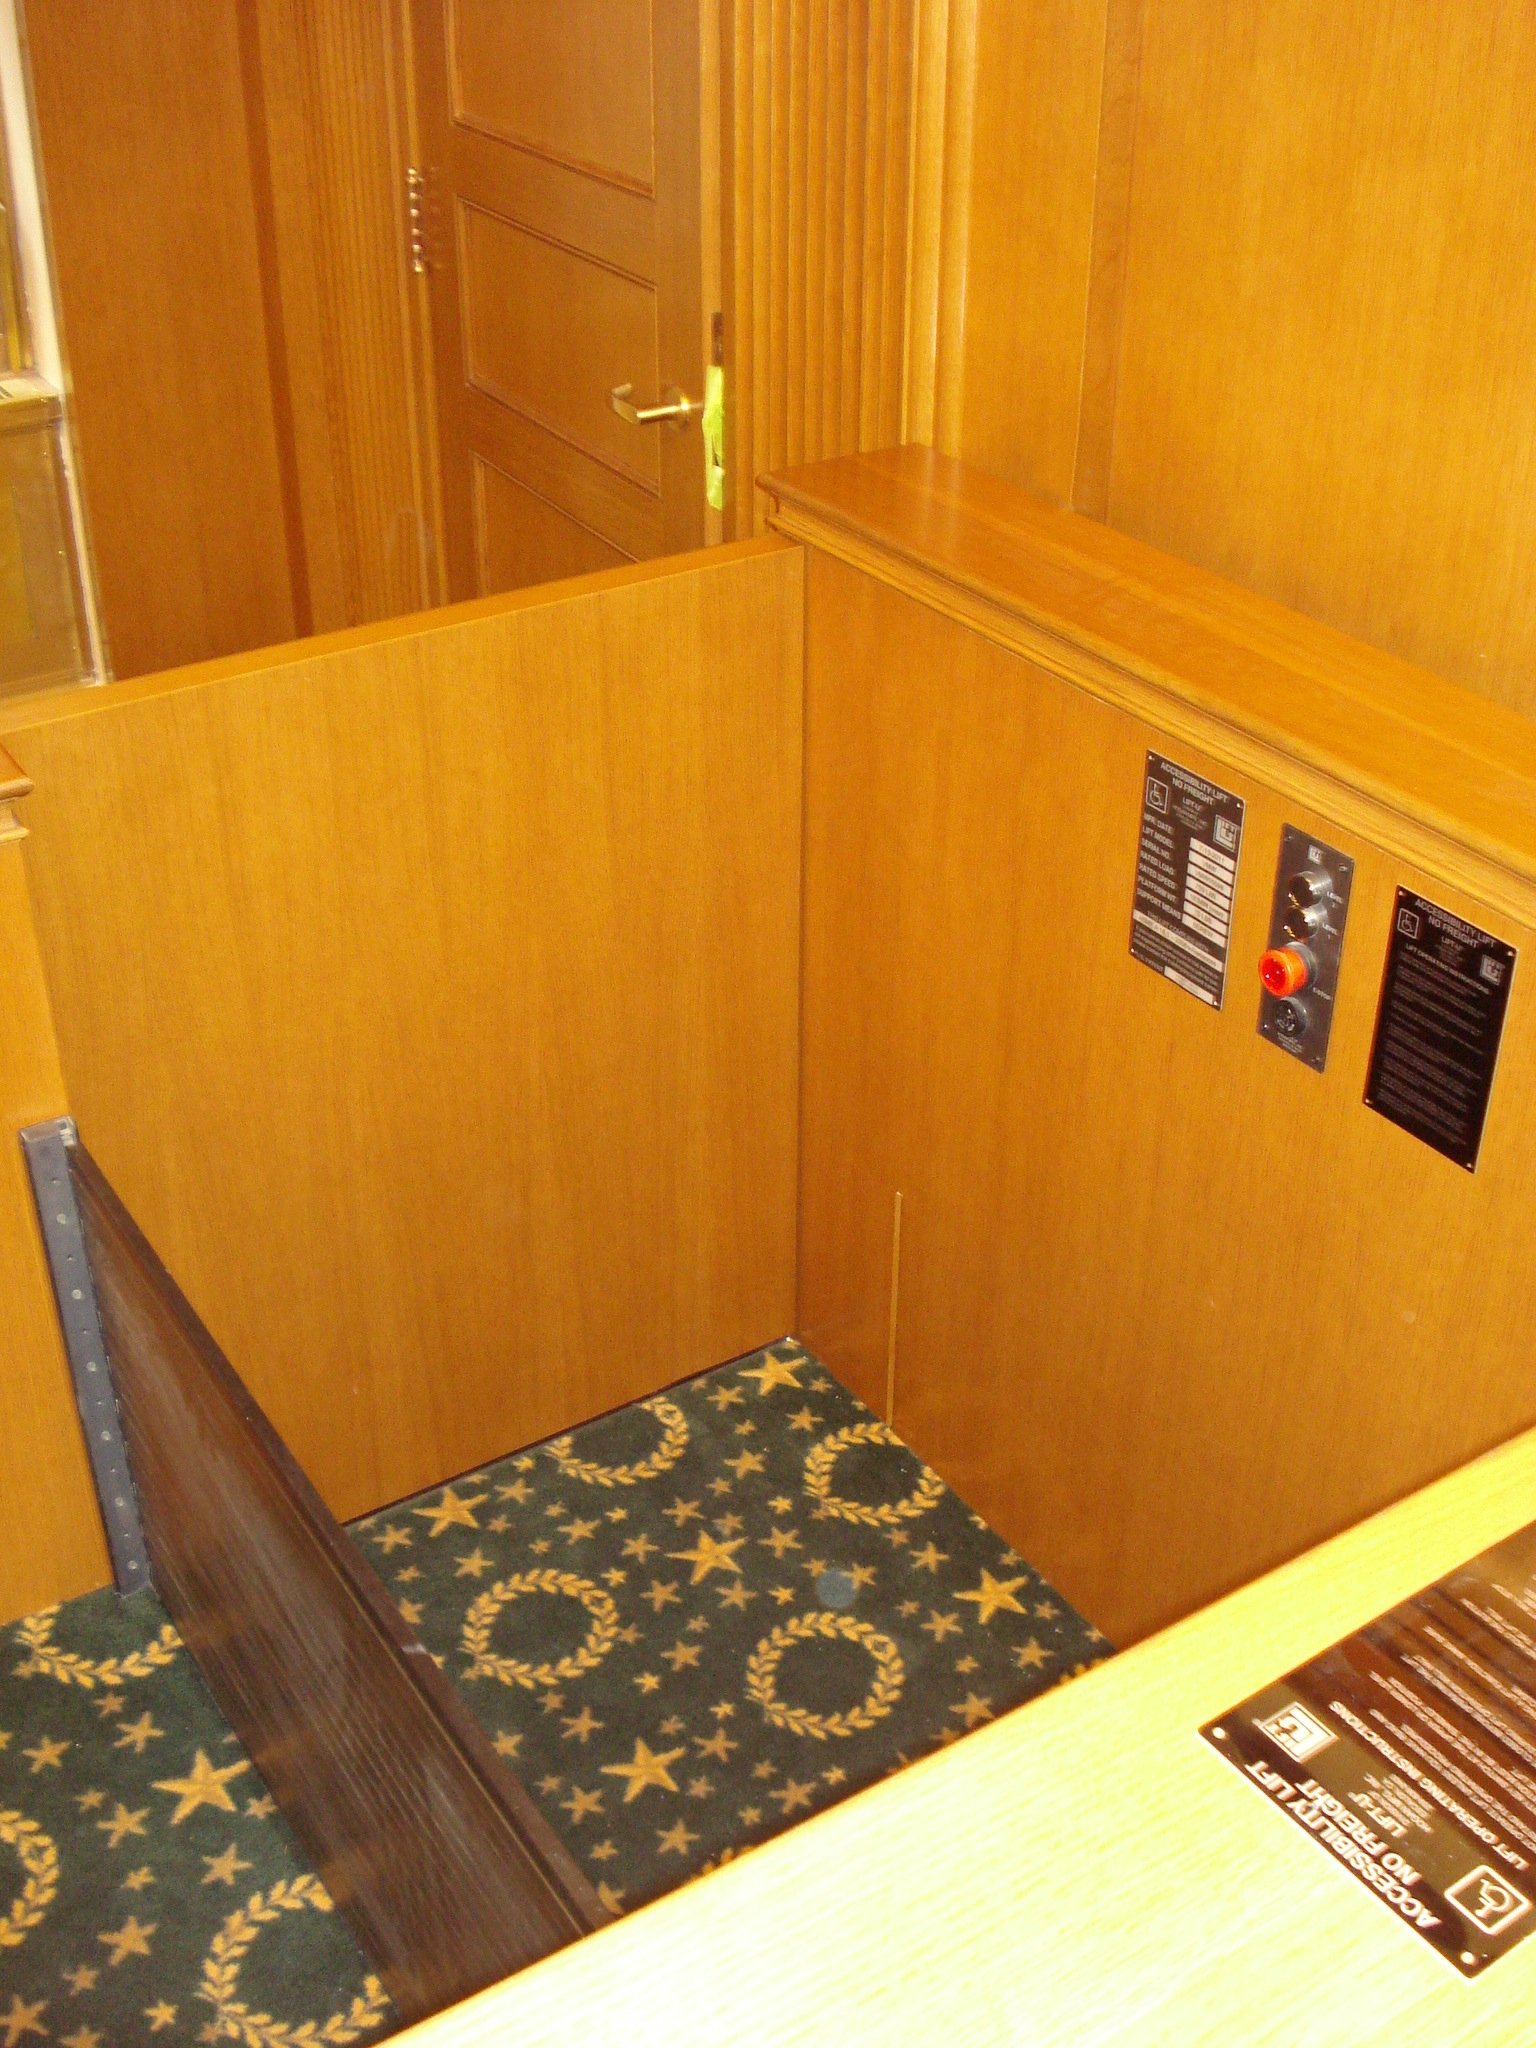 View from Judge's bench looking down into lift. Lift positioned at lower level with lower level door closed and the roll-up barrier up to guard the desk area in the witness stand. Lift encased in wood millwork blending in with courtroom millwork. Lift is readily available and independently operable.